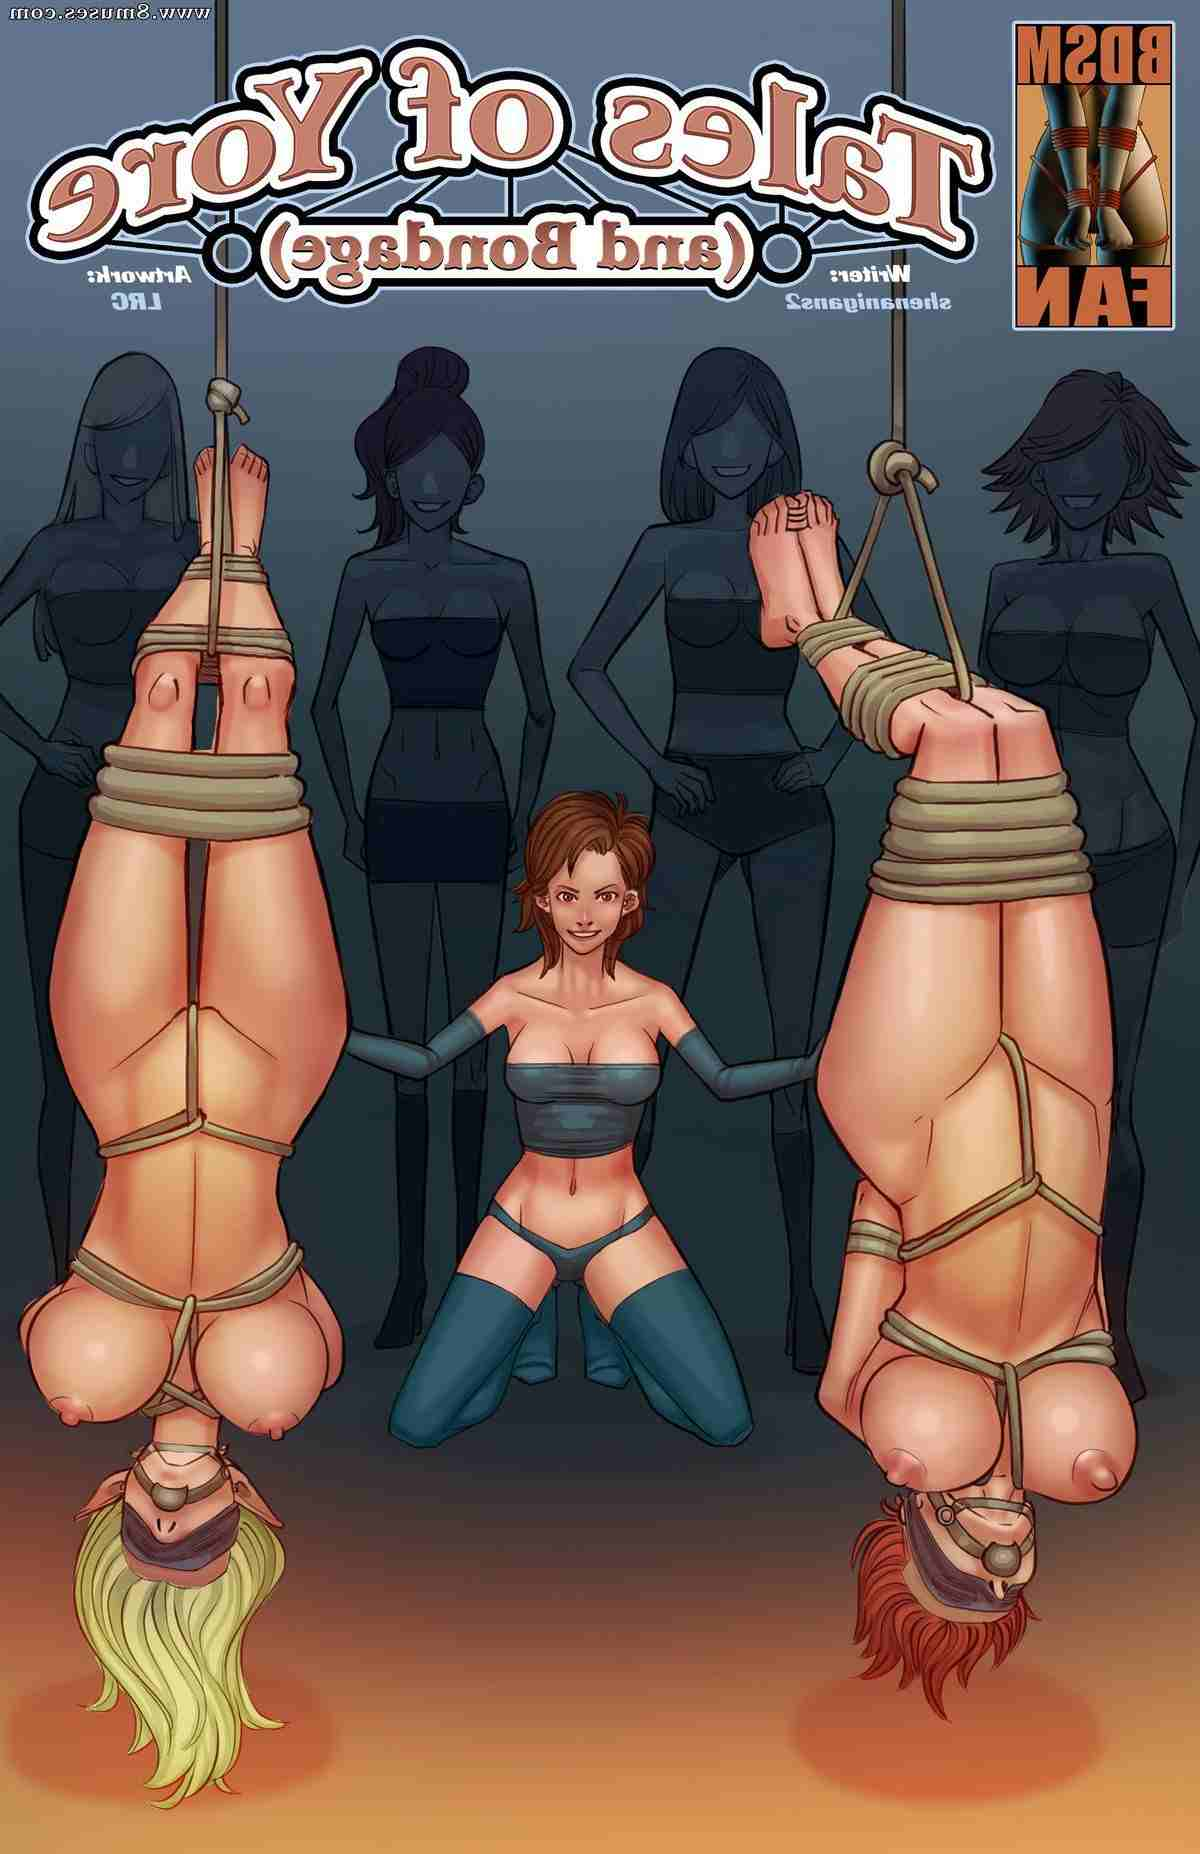 BDSM-Fan-Comics/Tales-of-Yore-and-Bondage Tales_of_Yore_and_Bondage__8muses_-_Sex_and_Porn_Comics.jpg